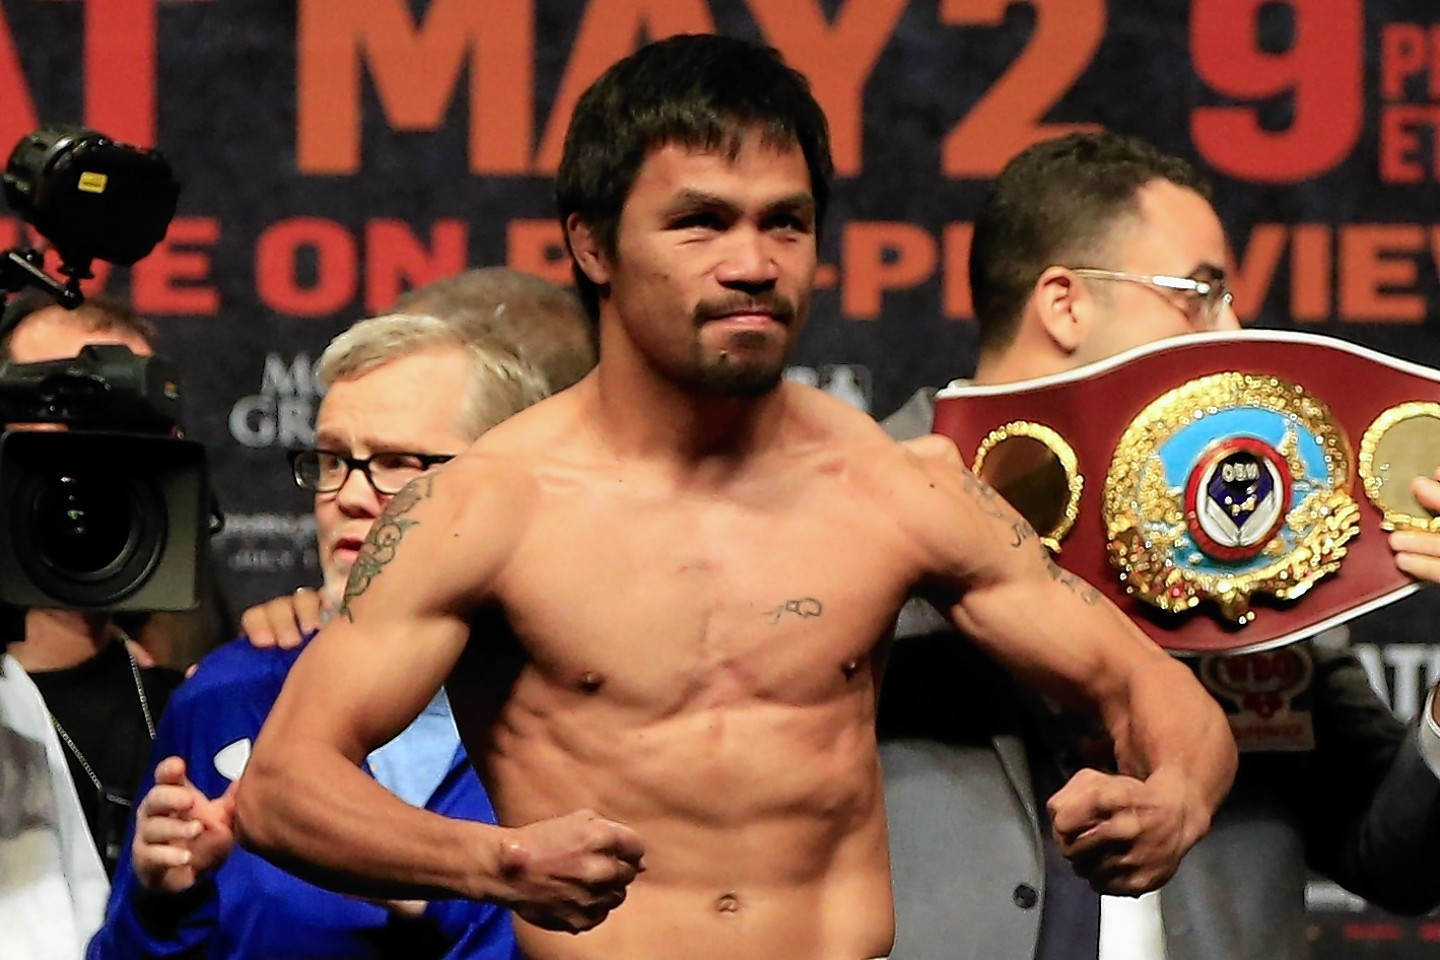 Manny Pacquiao poses on the scale during his official weigh-in